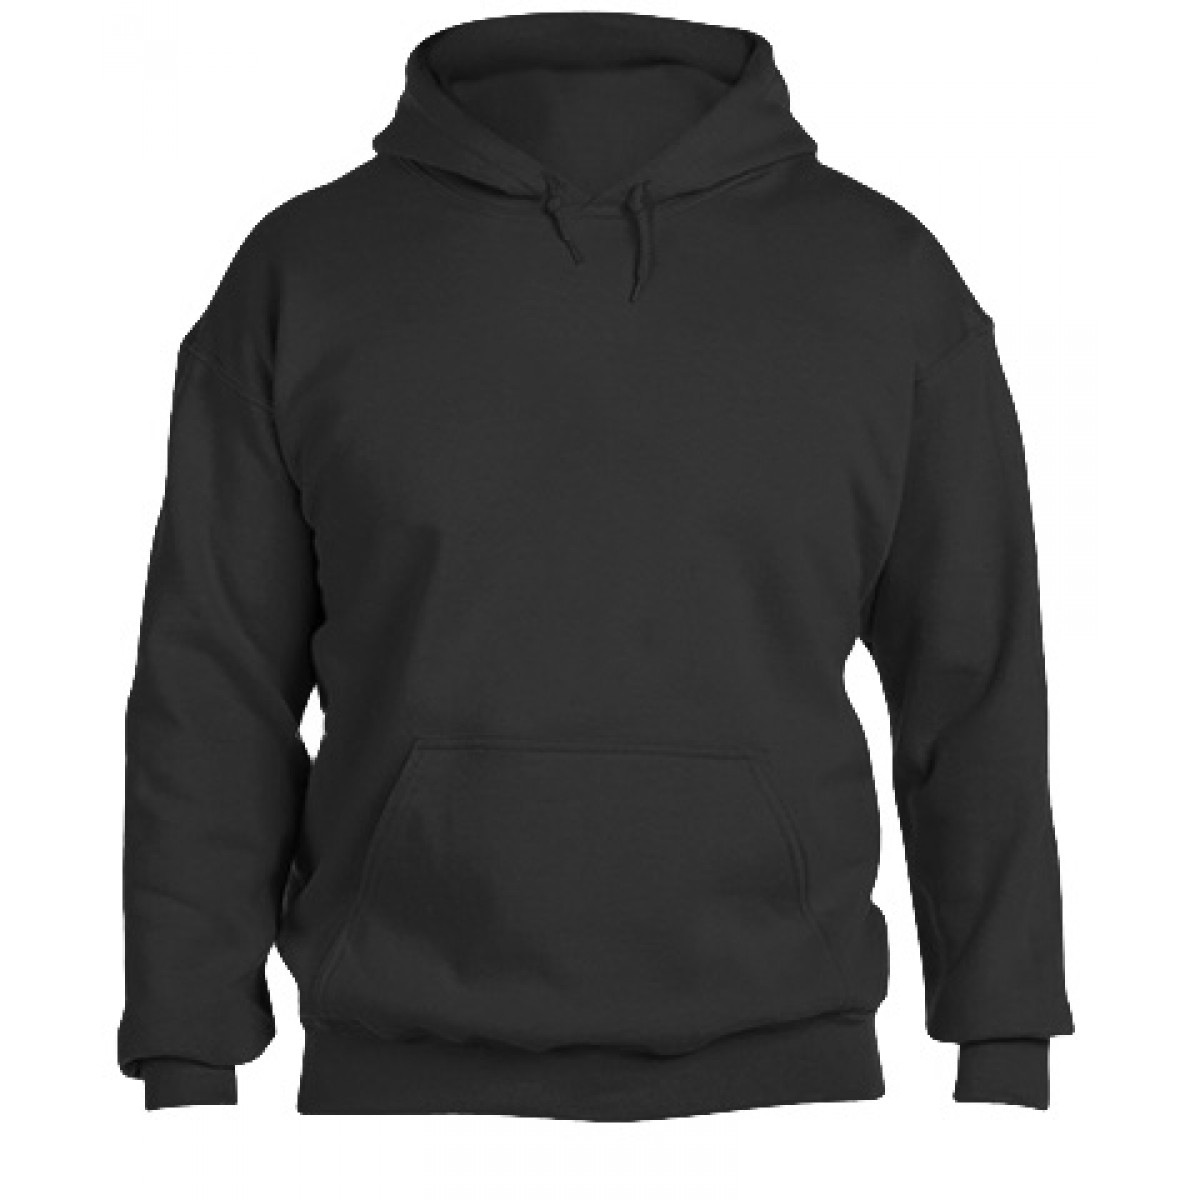 Solid Hooded Sweatshirt  50/50 Heavy Blend-Black-3XL